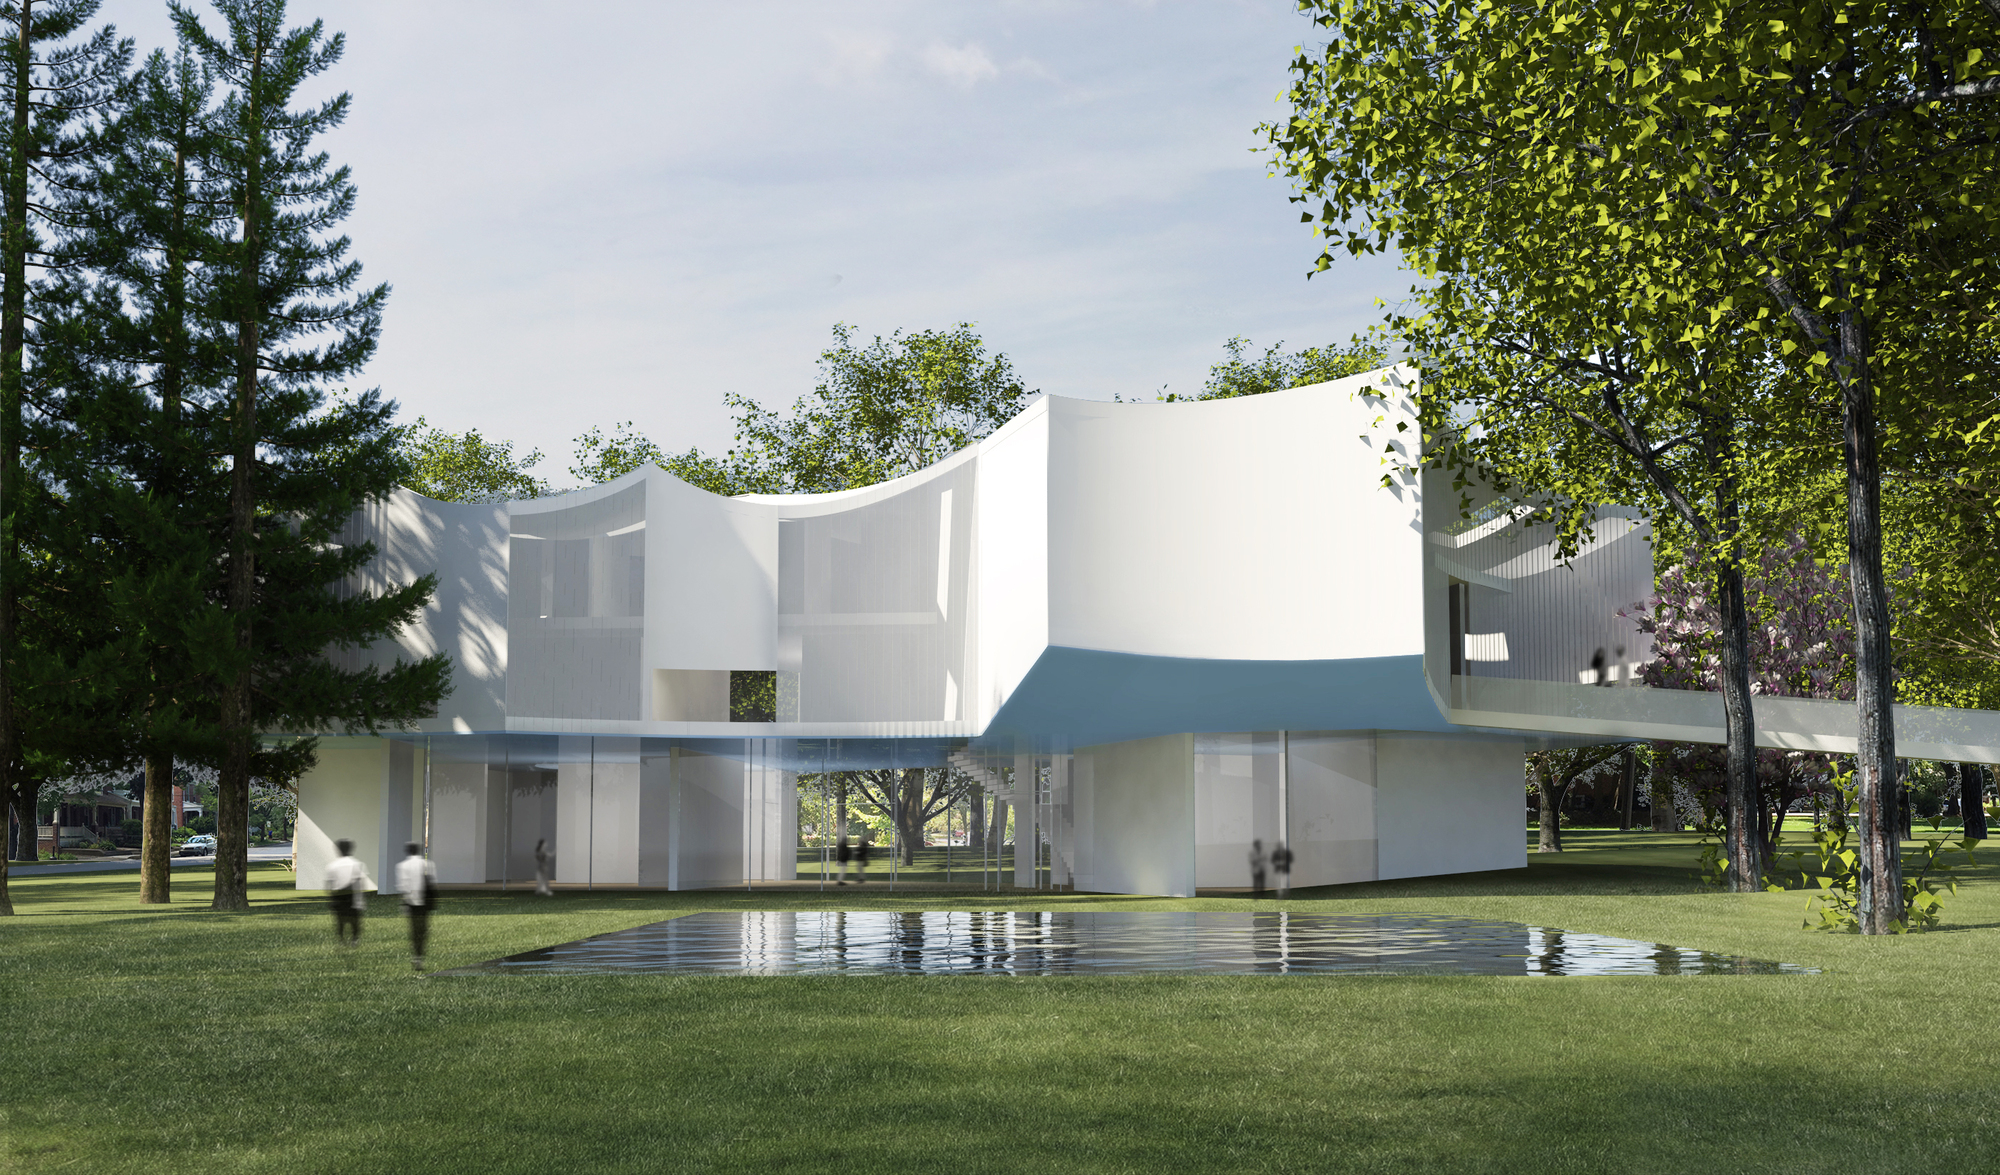 Steven Holl Designs A New Visual Arts Building For